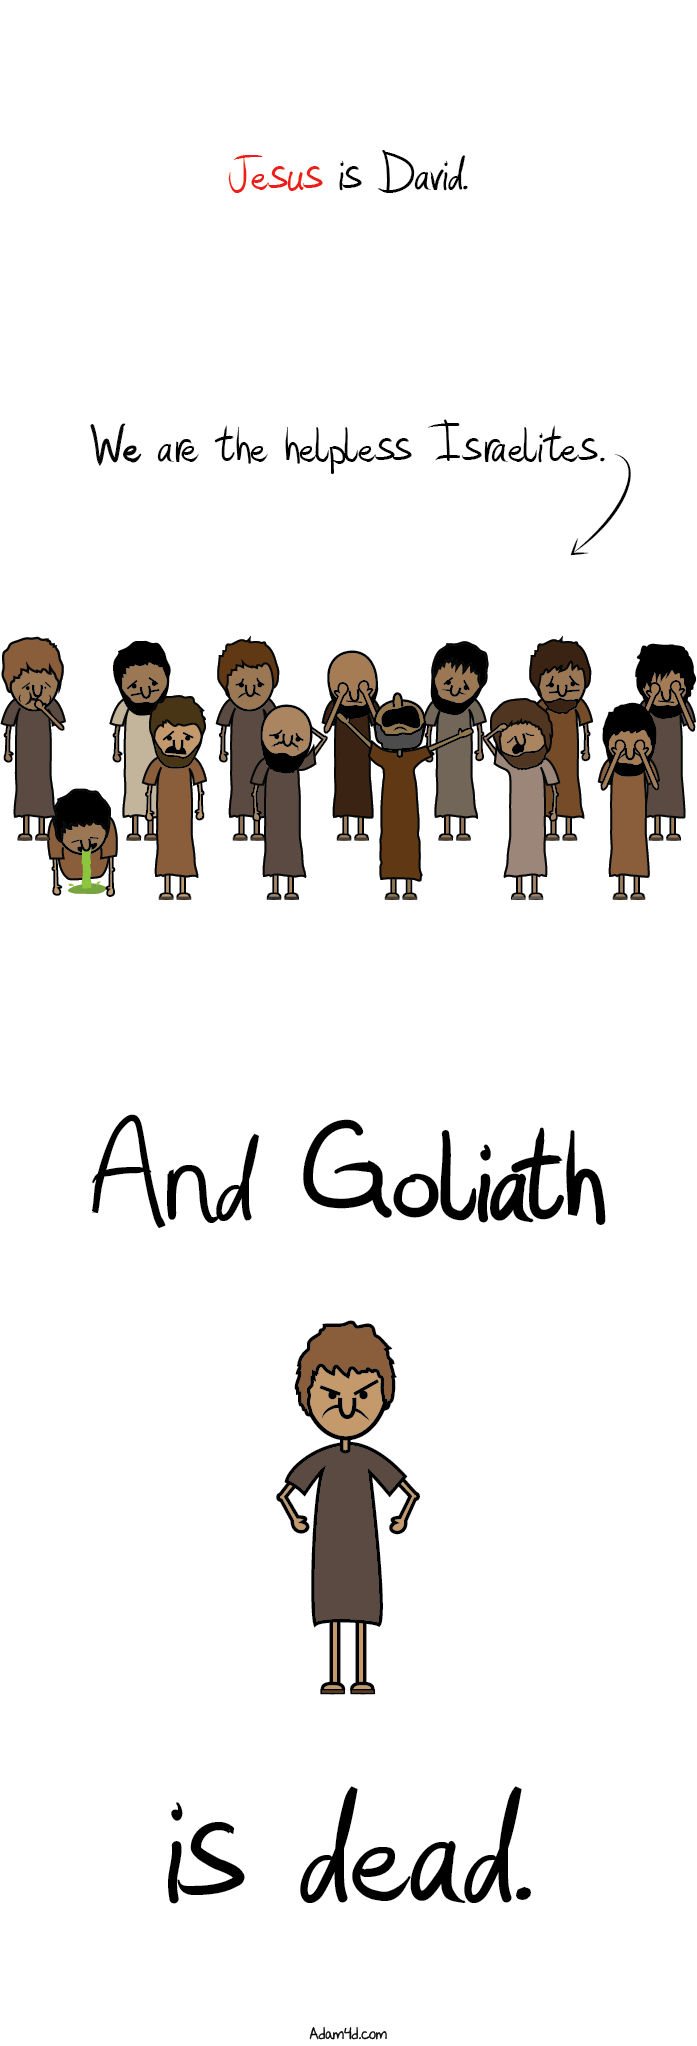 goliath-is-dead